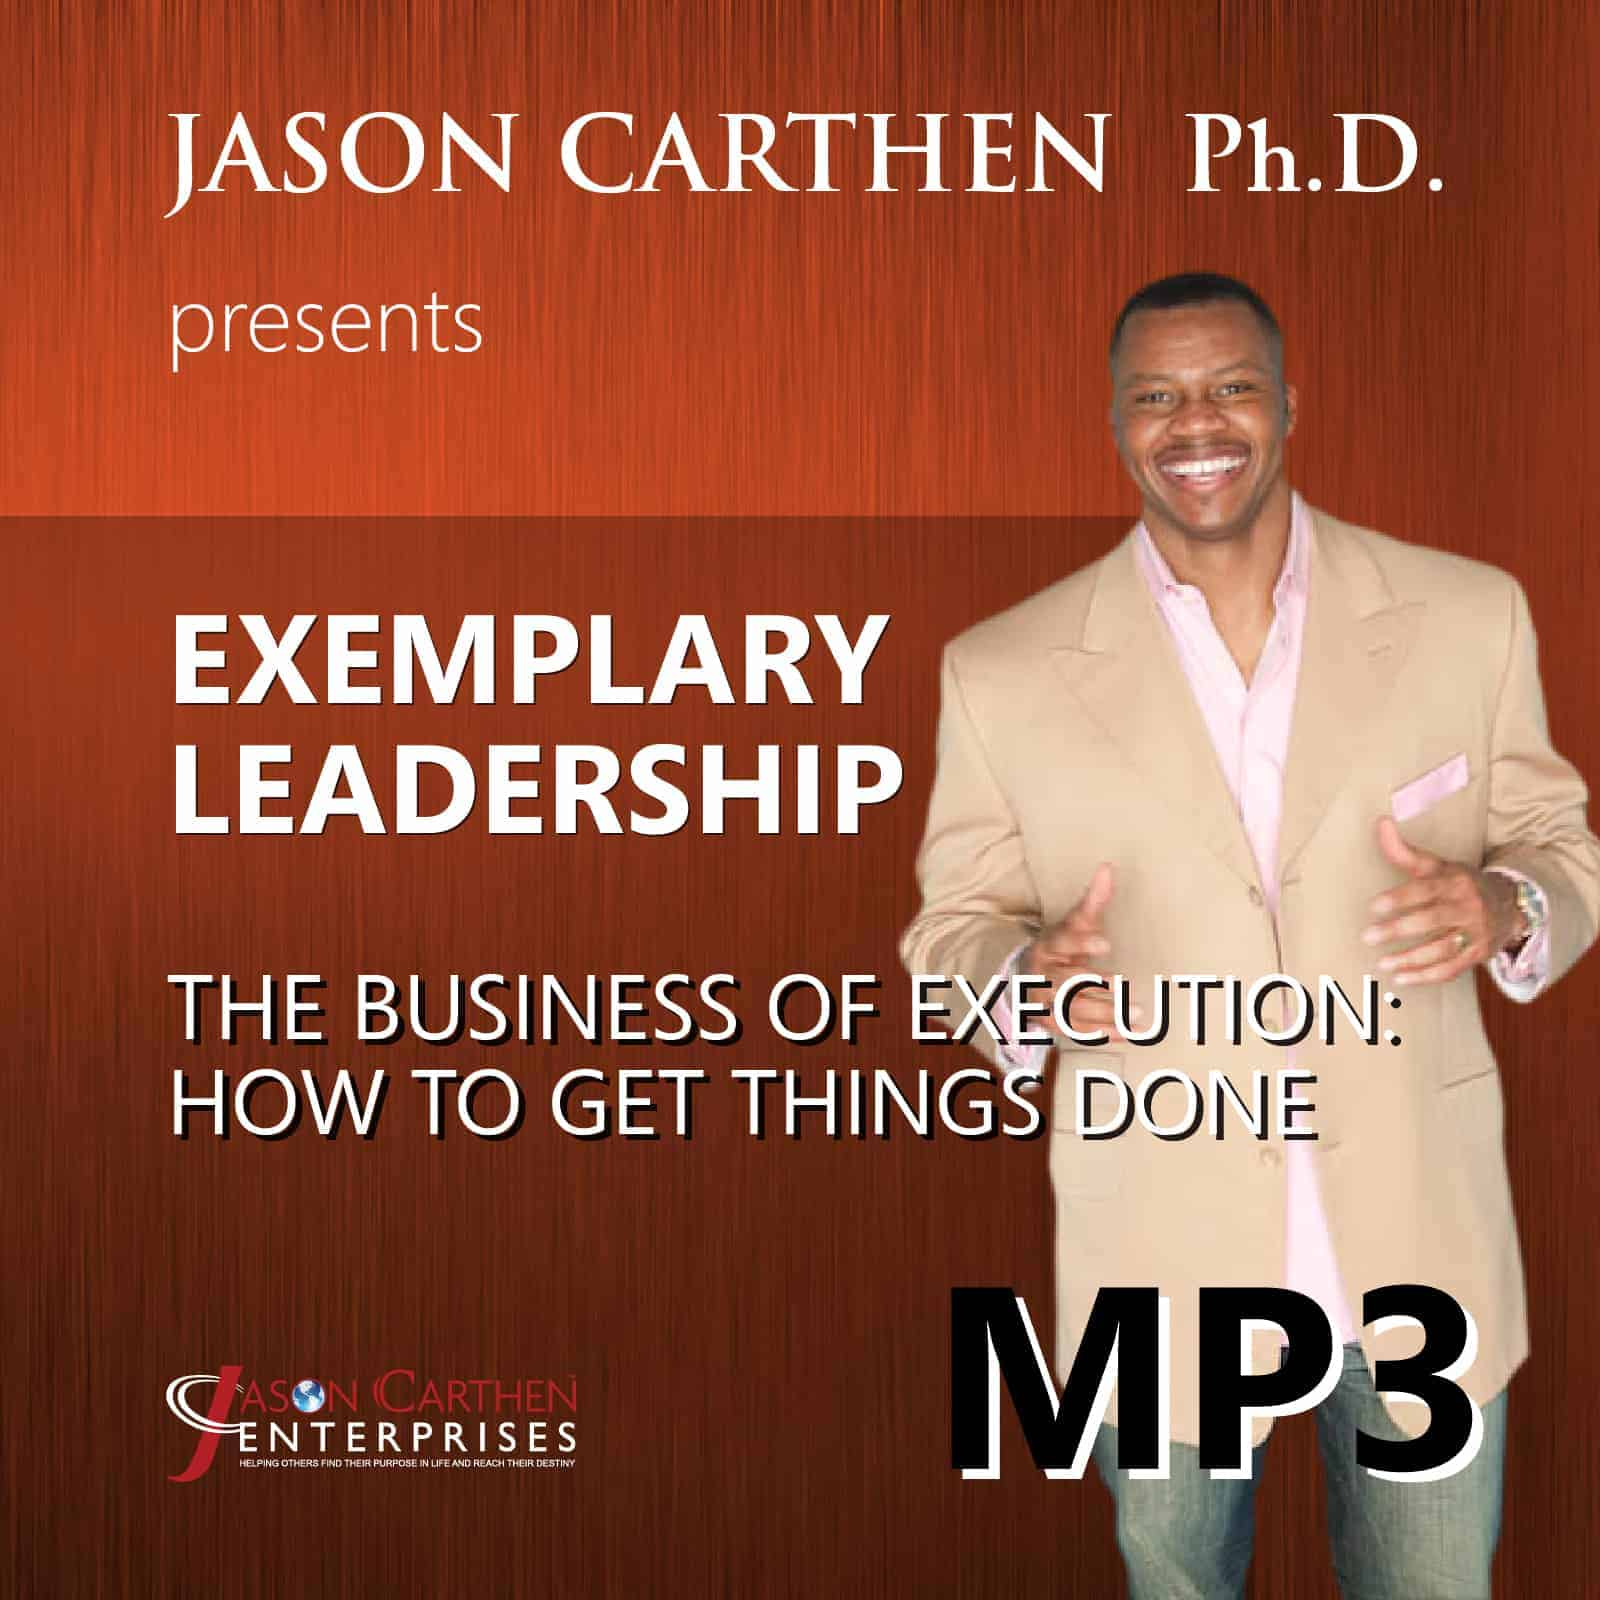 Dr. Jason Carthen: The Business of Execution